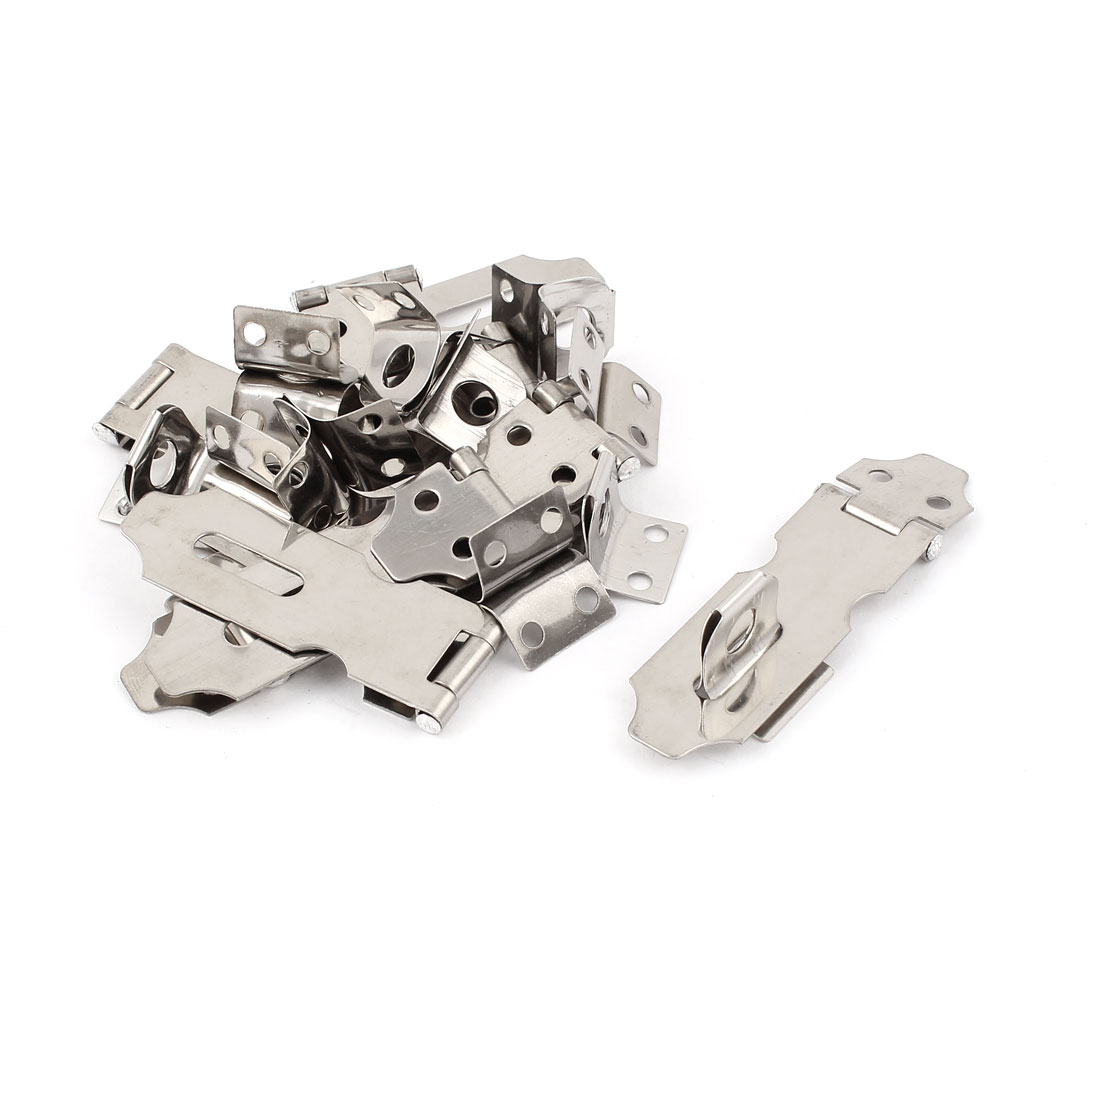 Rv Cabinet Drawer Latches Online Buy Wholesale Drawer Latches From China Drawer Latches